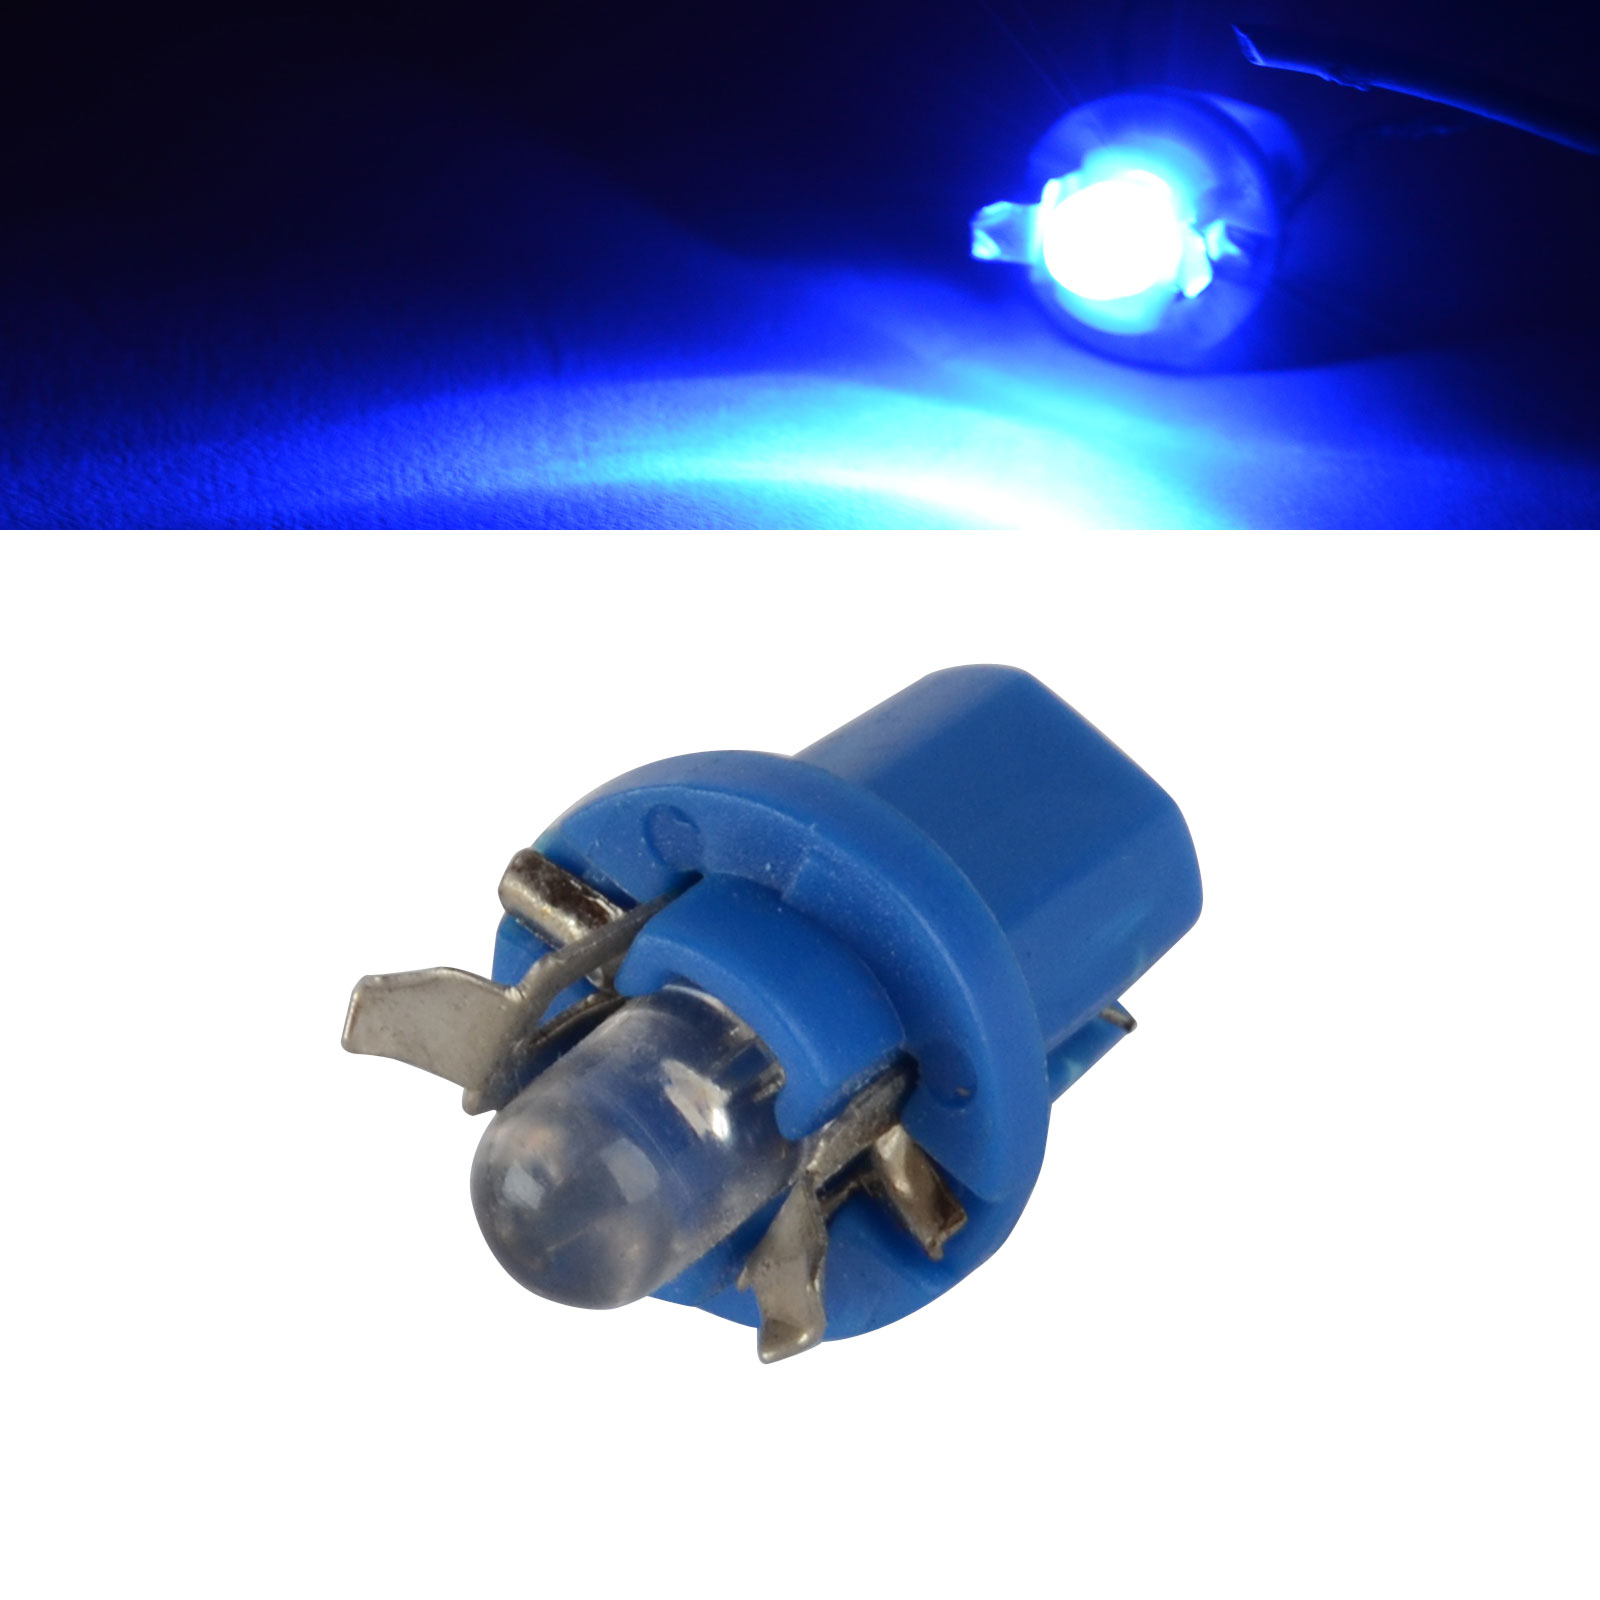 10PCS DC 12V Blue T5 B8.5D 1 SMD LED Car Interior Dome Dashboard Panel Side Light Bulb Auto Indicator Lamp For Car Truck Boat 5pcs lot led indicator light lamp pilot dash direction bulb dashboard panel instrument light car truck boat 5 color